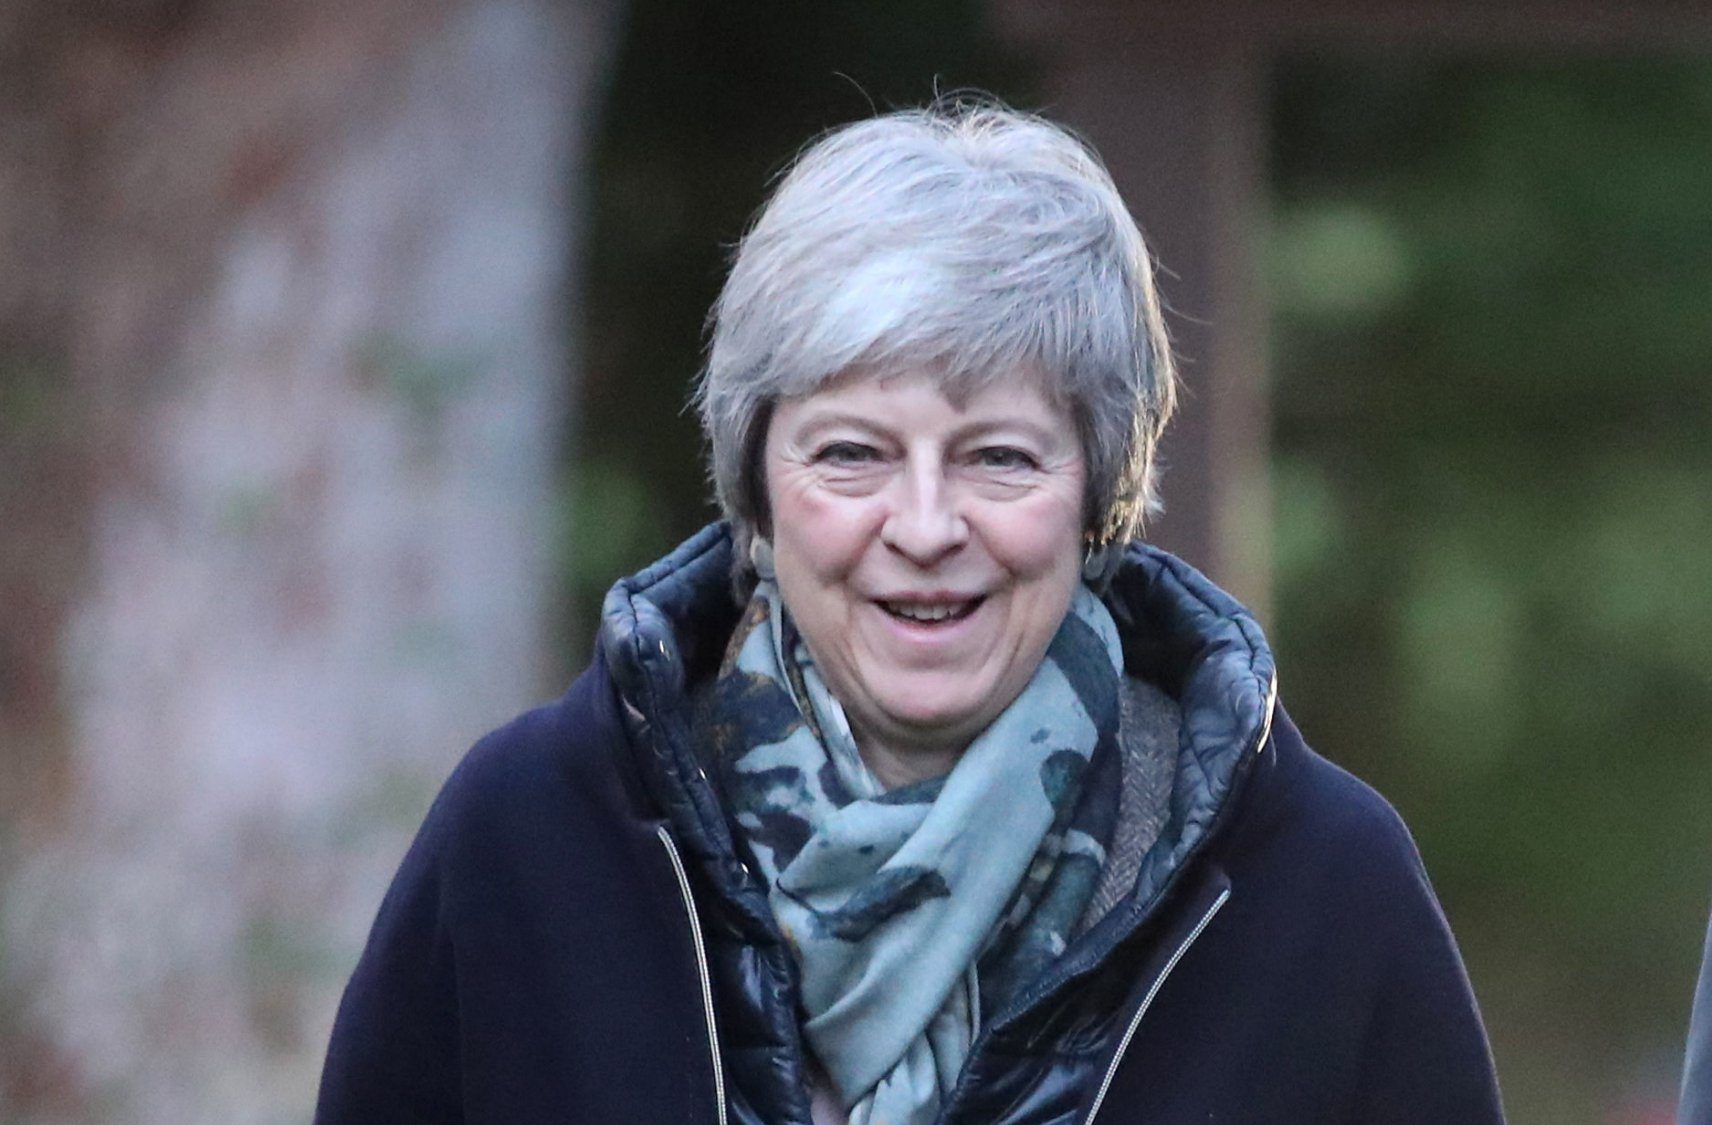 Prime Minister Theresa May arrives for a church service near her Maidenhead constituency. PRESS ASSOCIATION Photo. Picture date: Sunday December 16, 2018. See PA story POLITICS Brexit. Photo credit should read: Andrew Matthews/PA Wire